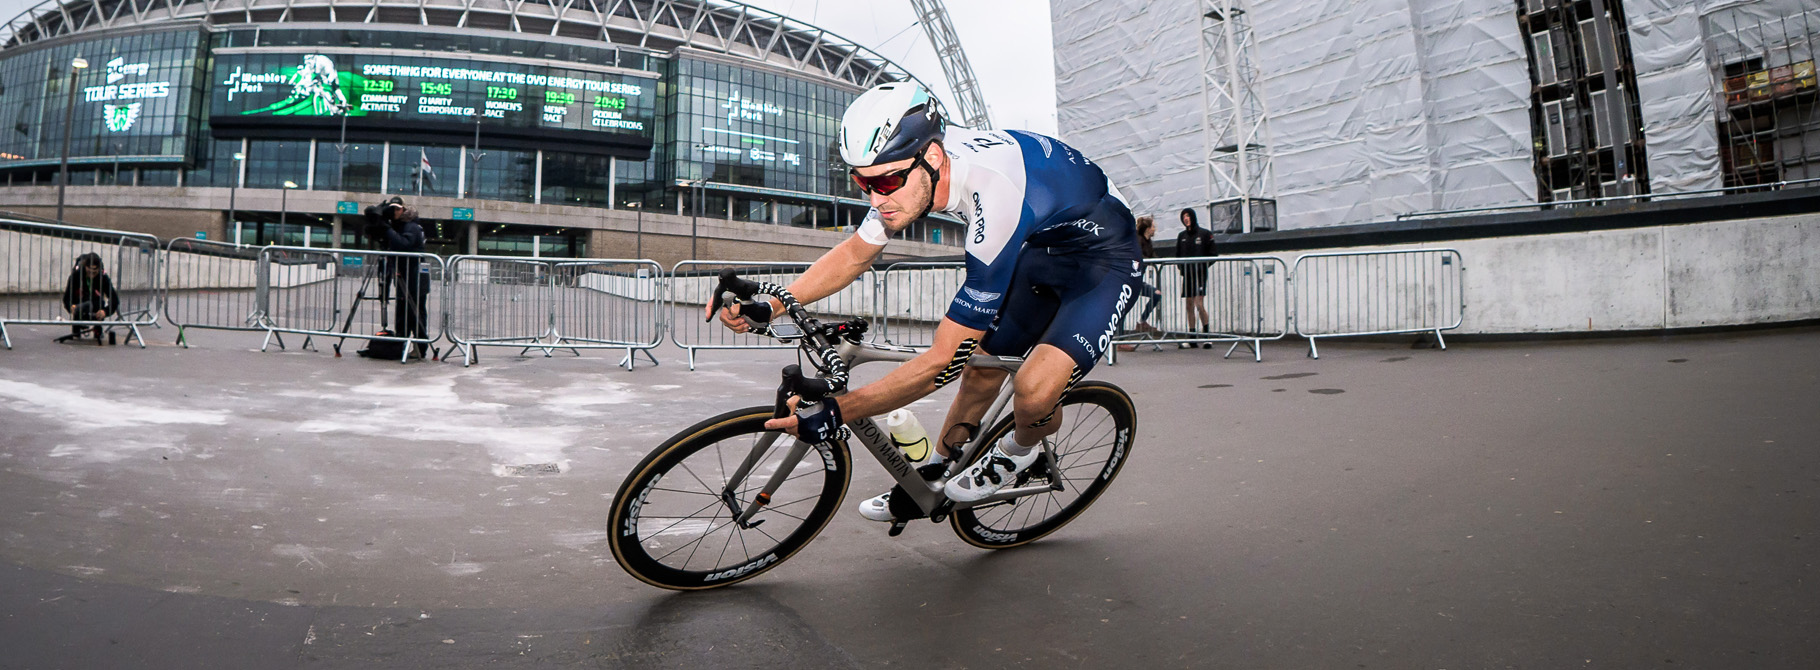 WEMBLEY TOUR SERIES